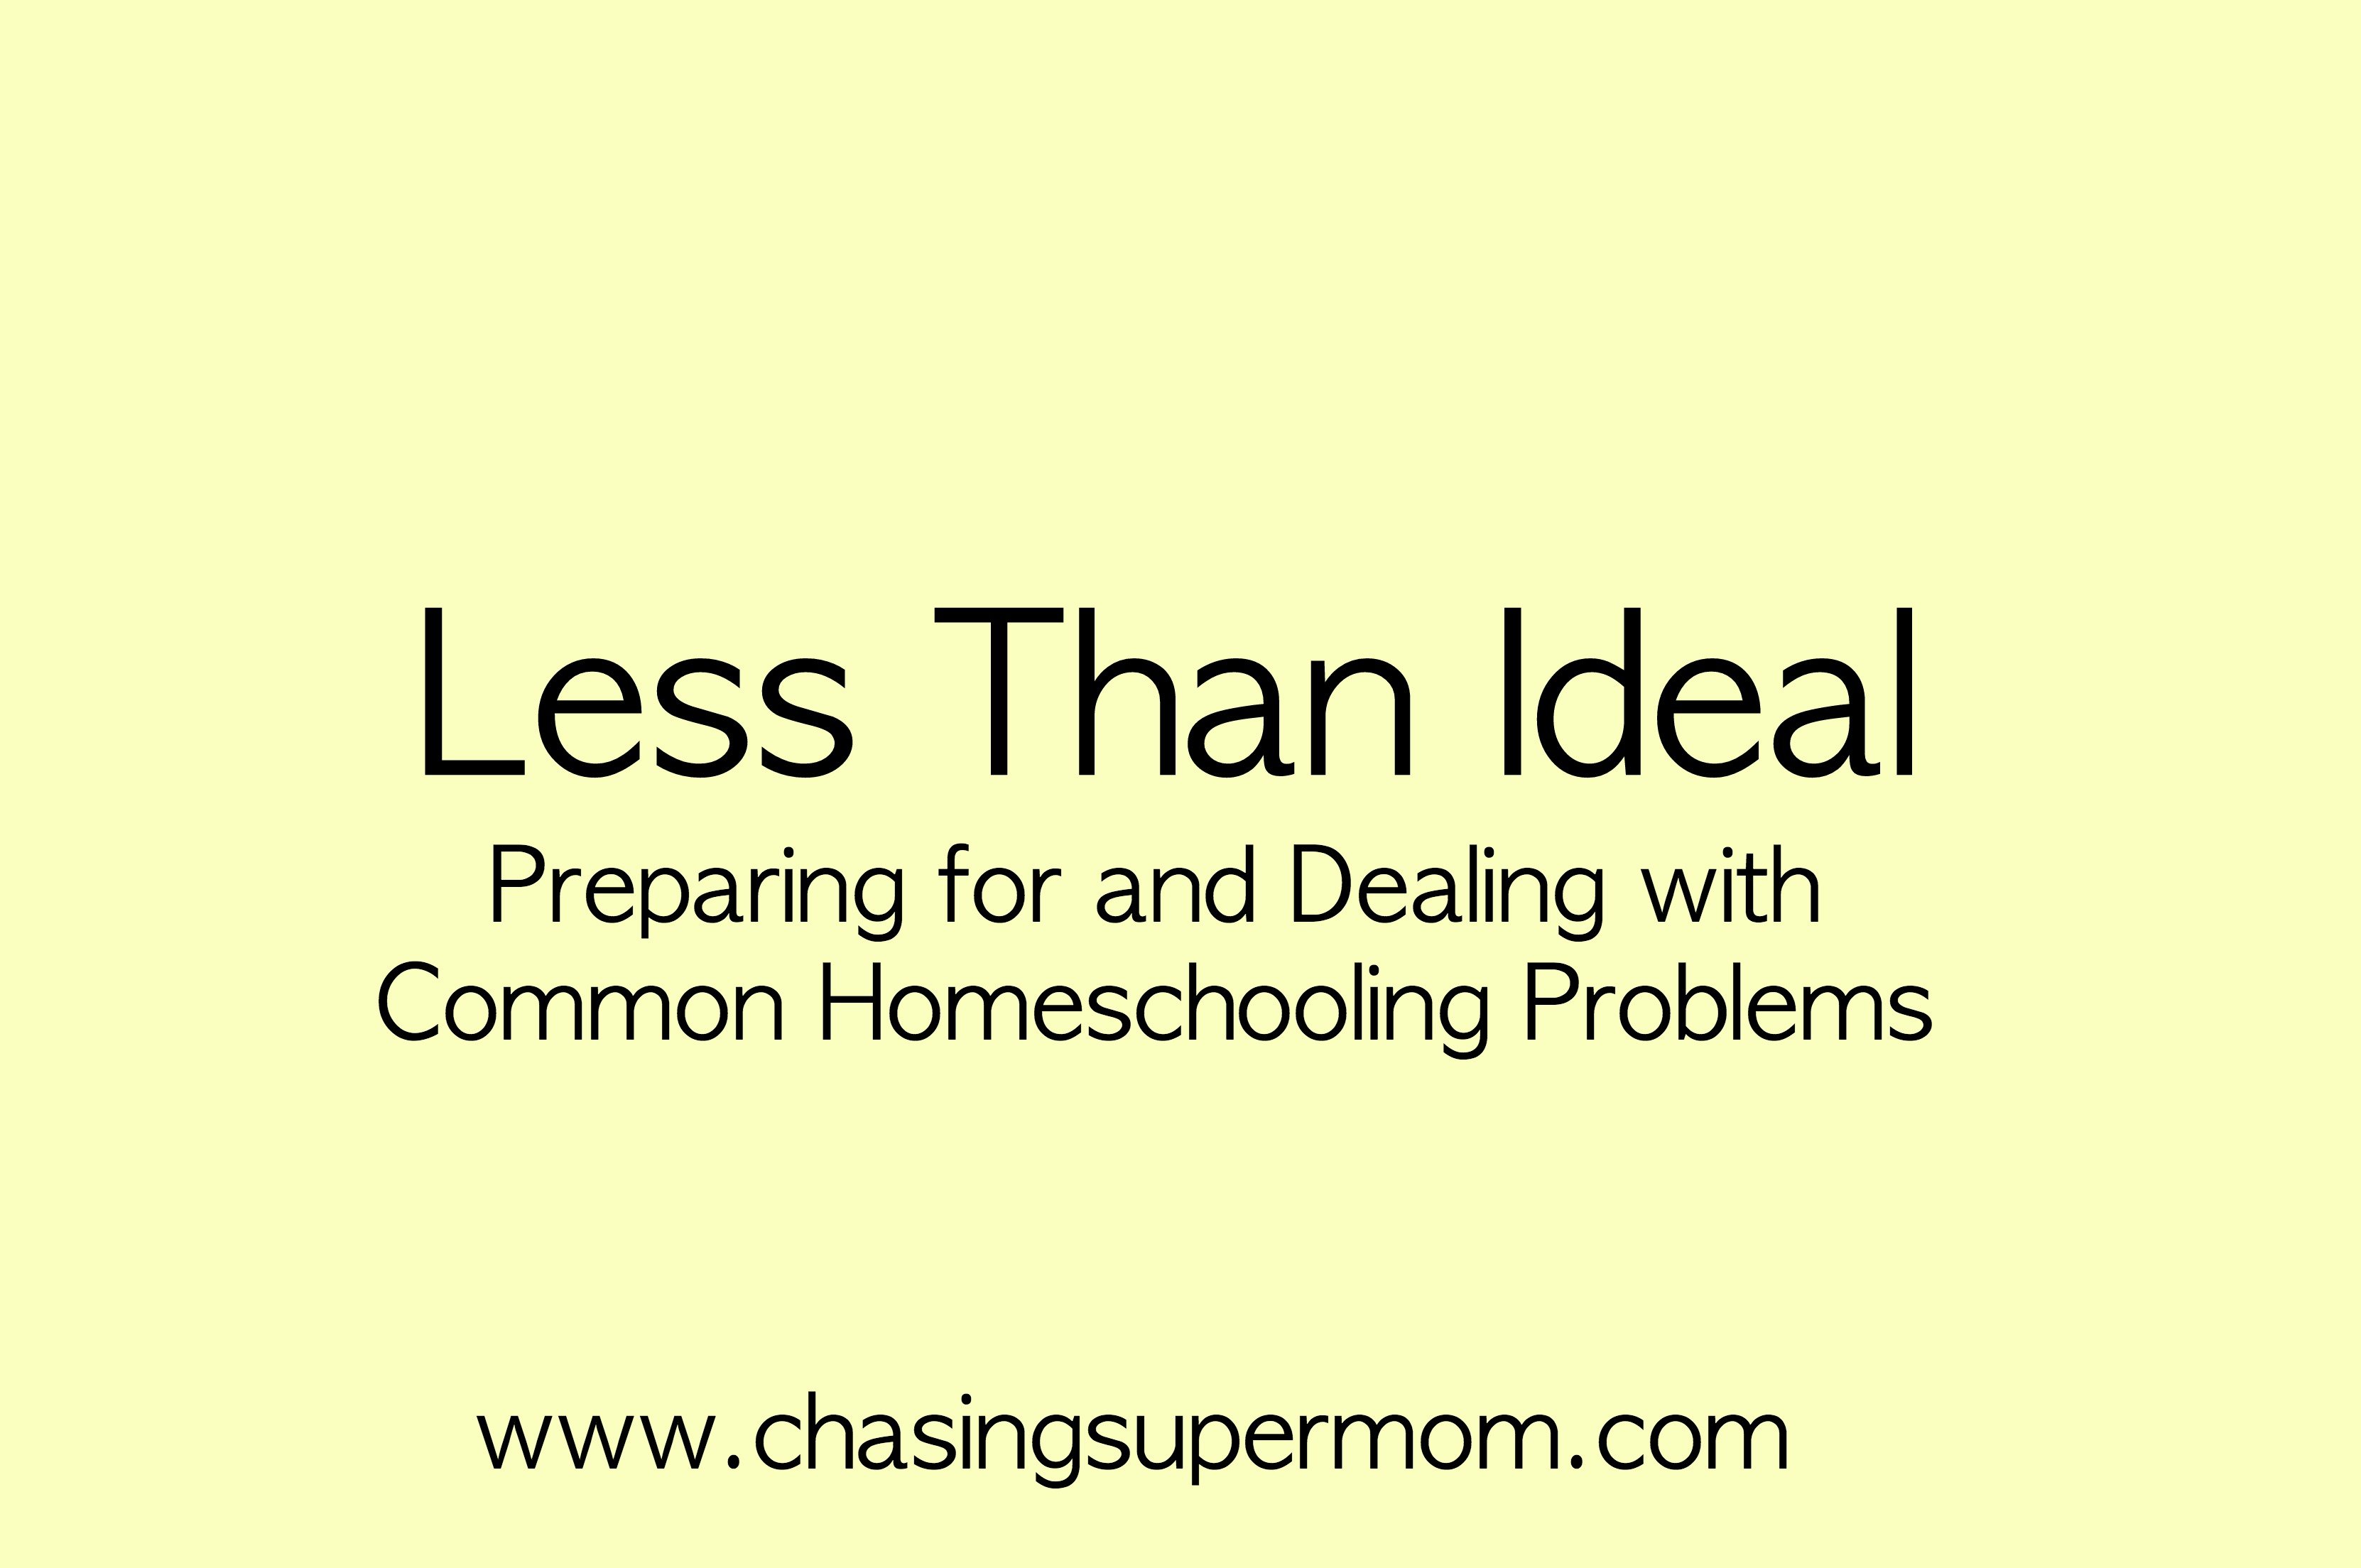 Less Than Ideal: Preparing for and Dealing With Common Homeschooling Problems